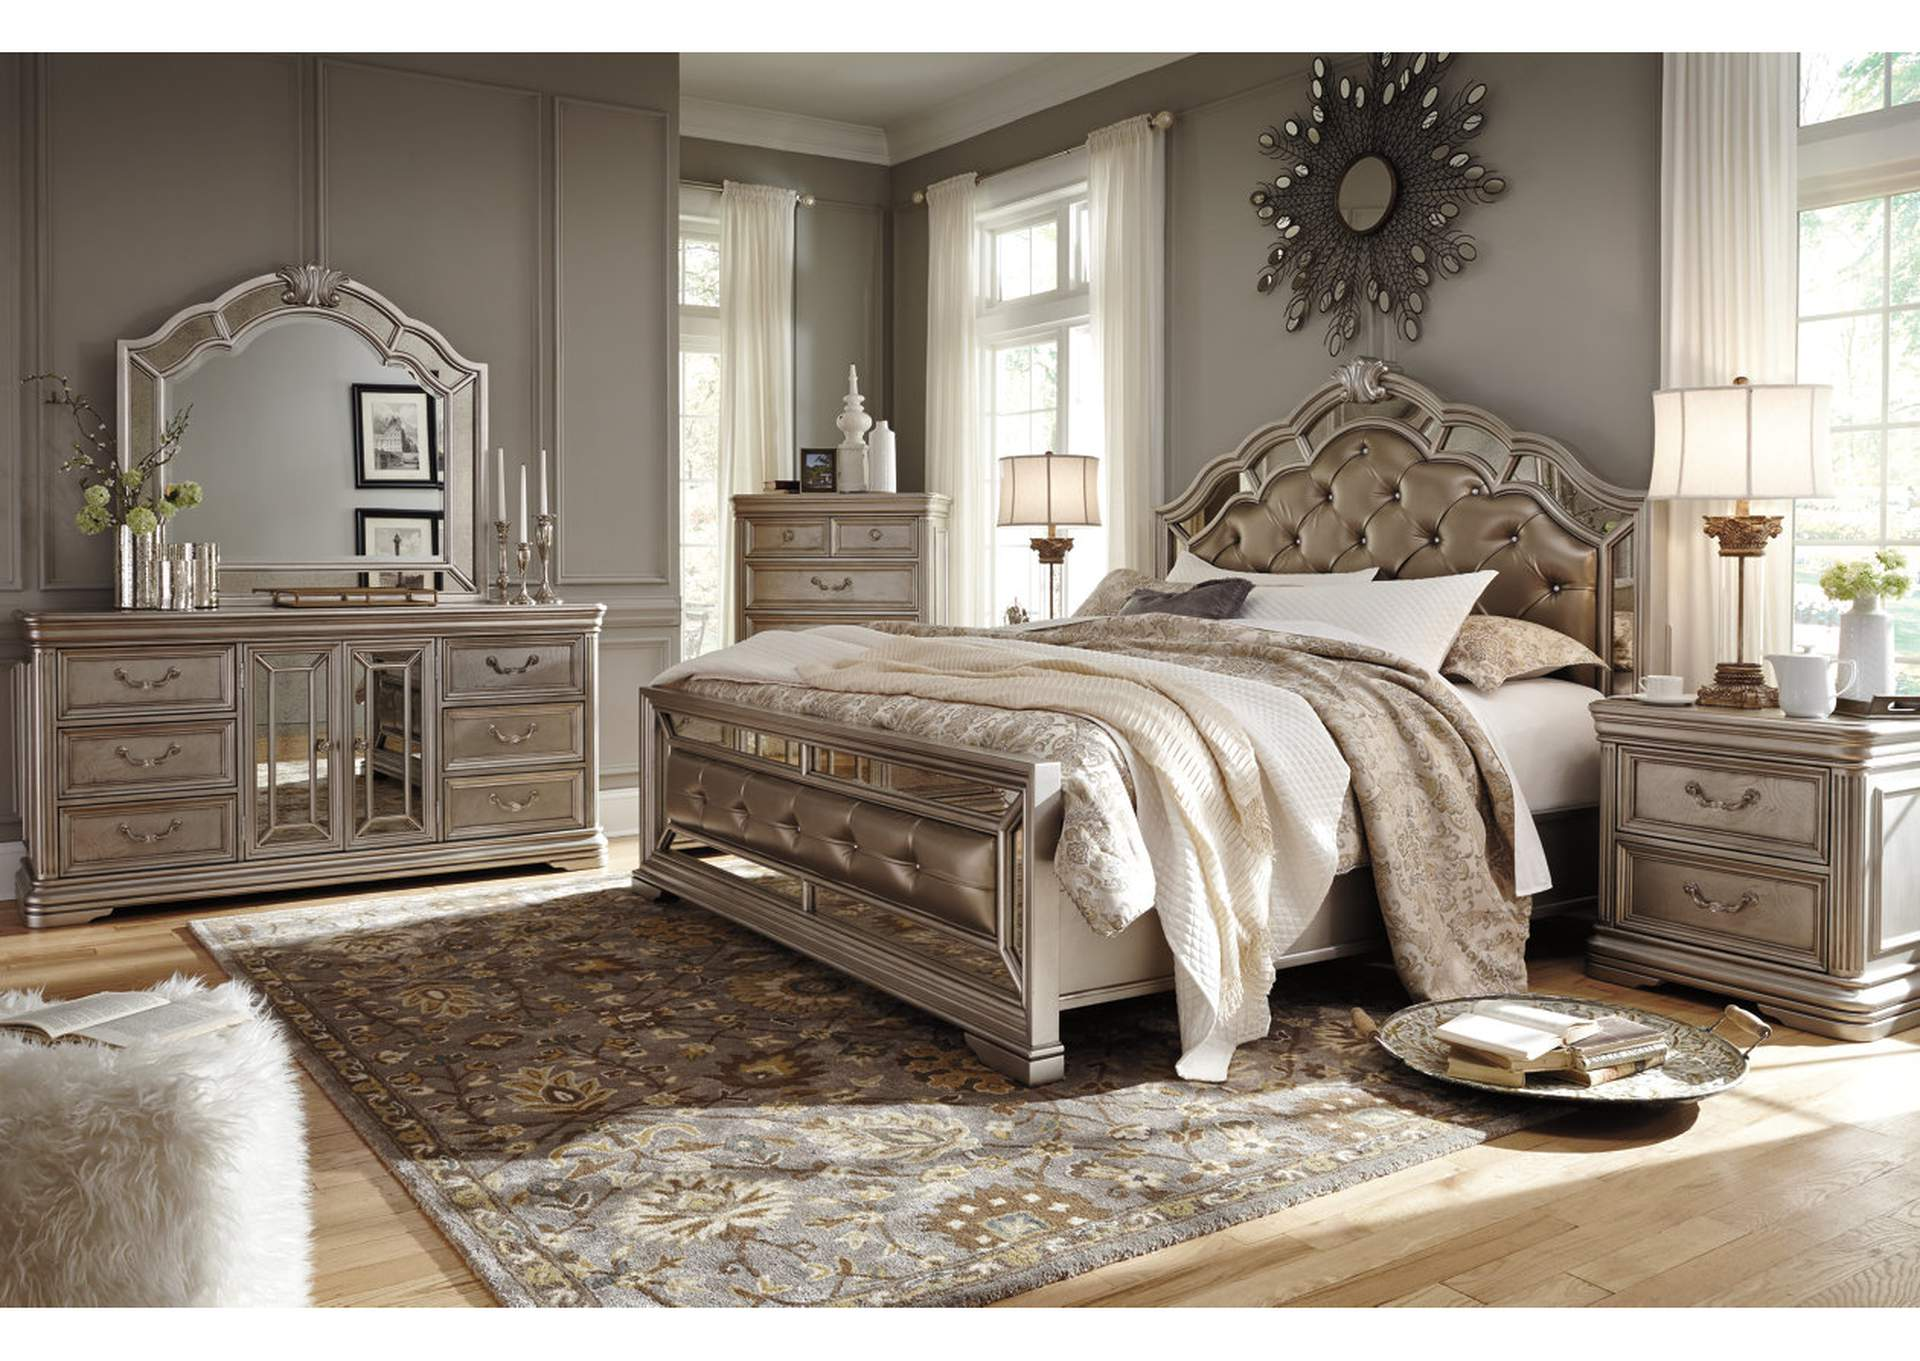 Birlanny Silver Queen Upholstered Bed w/Dresser, Mirror & Nightstand,Signature Design By Ashley